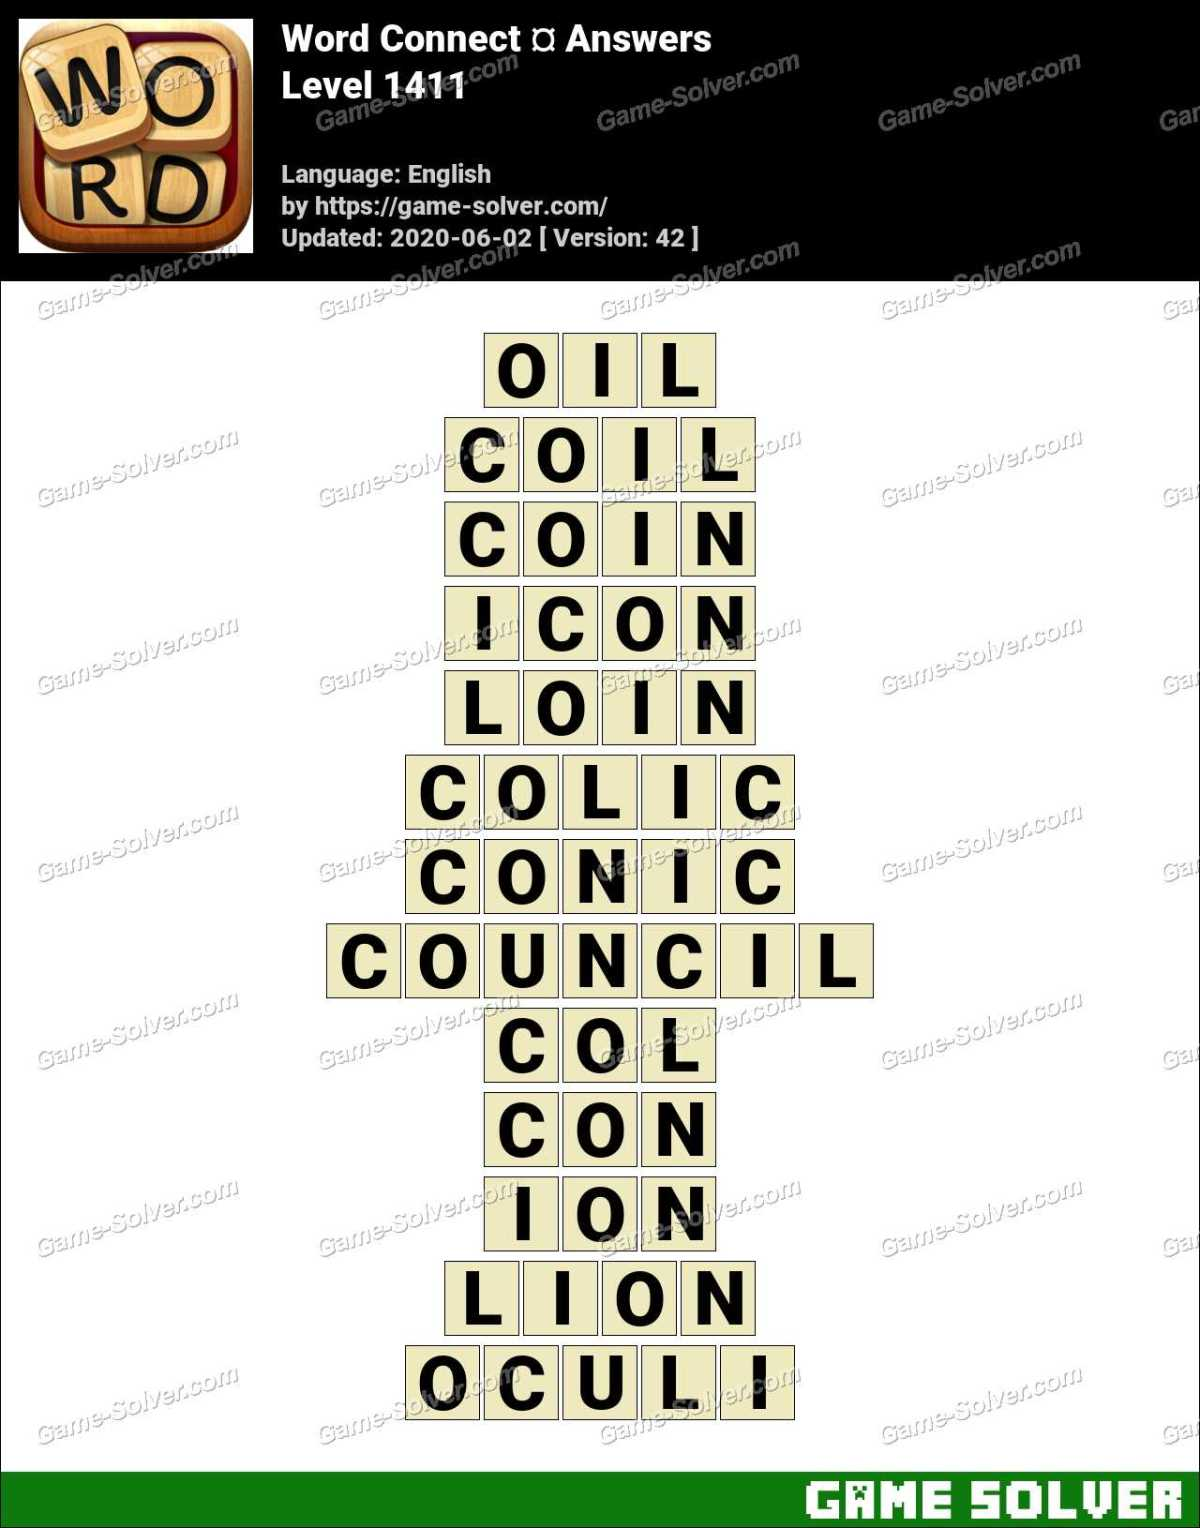 Word Connect Level 1411 Answers